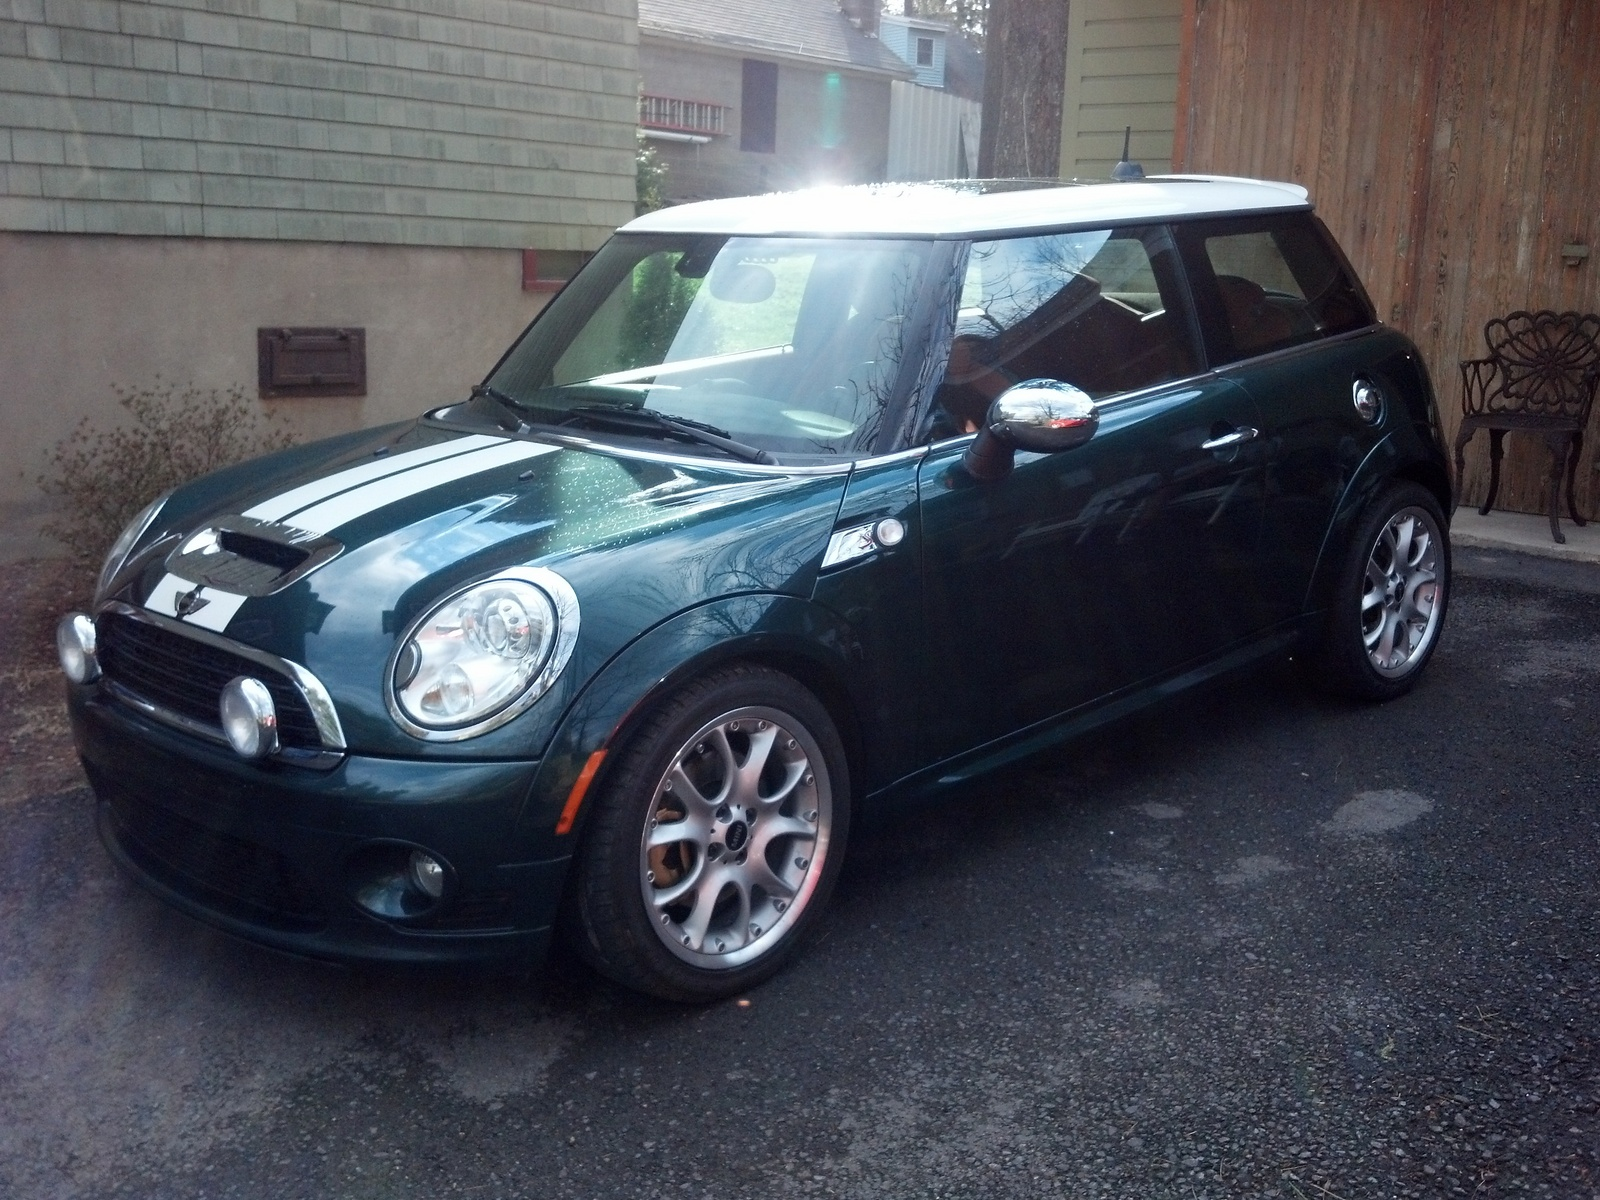 2009 mini cooper s used cars in greenwich 06831. Black Bedroom Furniture Sets. Home Design Ideas